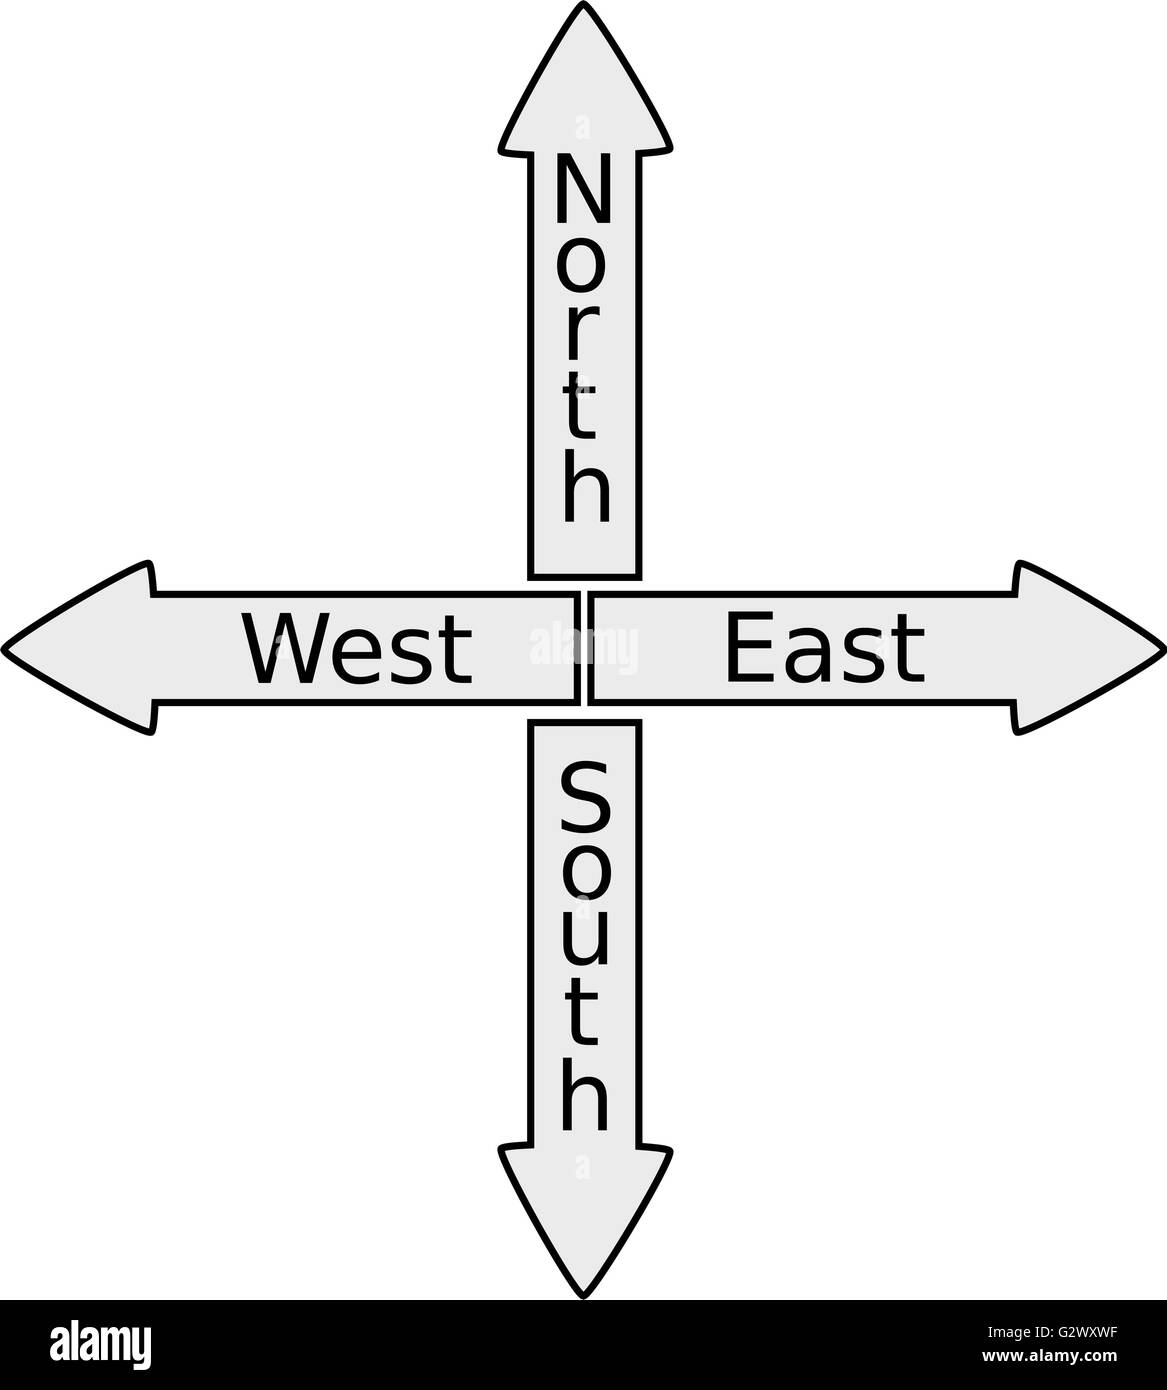 sign north south north east west south signpost shows travel or direction G2WXWF sign north, south, north east west south signpost shows travel or